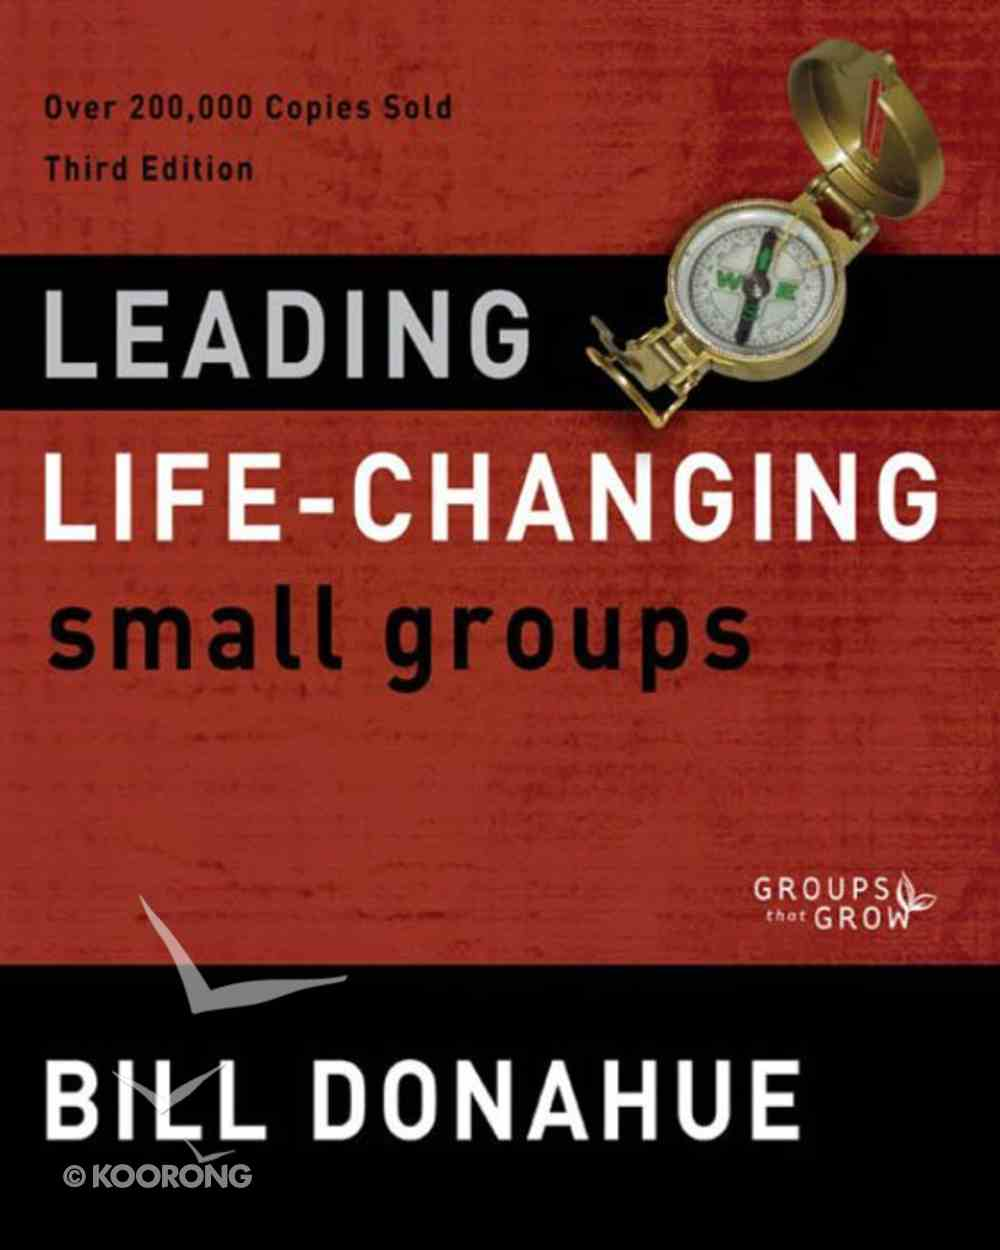 Leading Life-Changing Small Groups (Groups That Grow Series) eBook